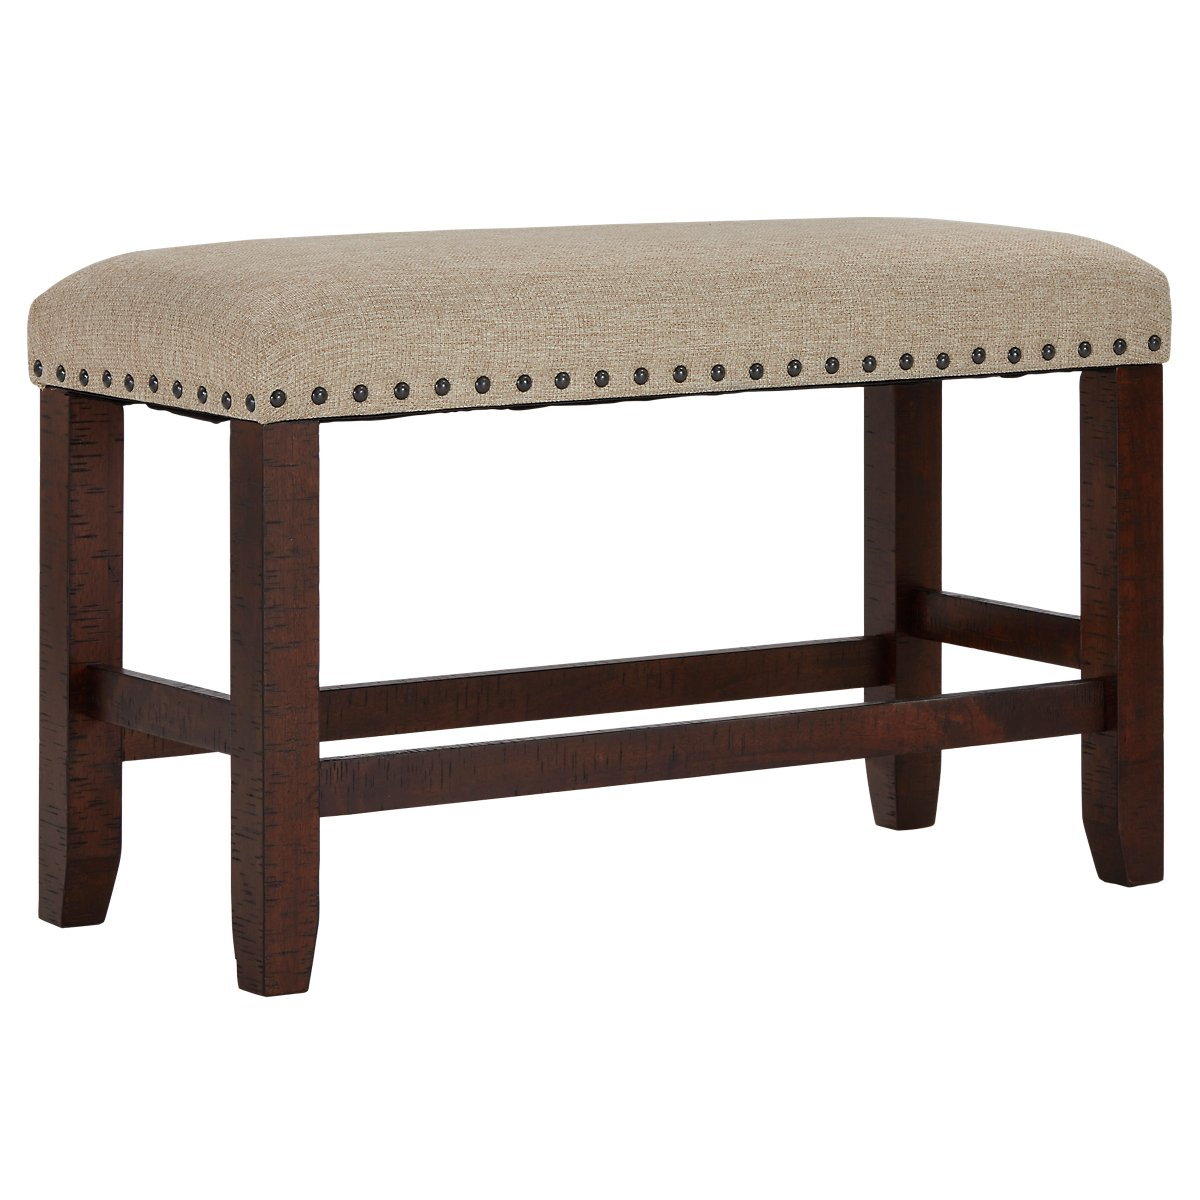 "Upholstered Bench Beige: Jax Beige Upholstered 24"" High Dining Bench"